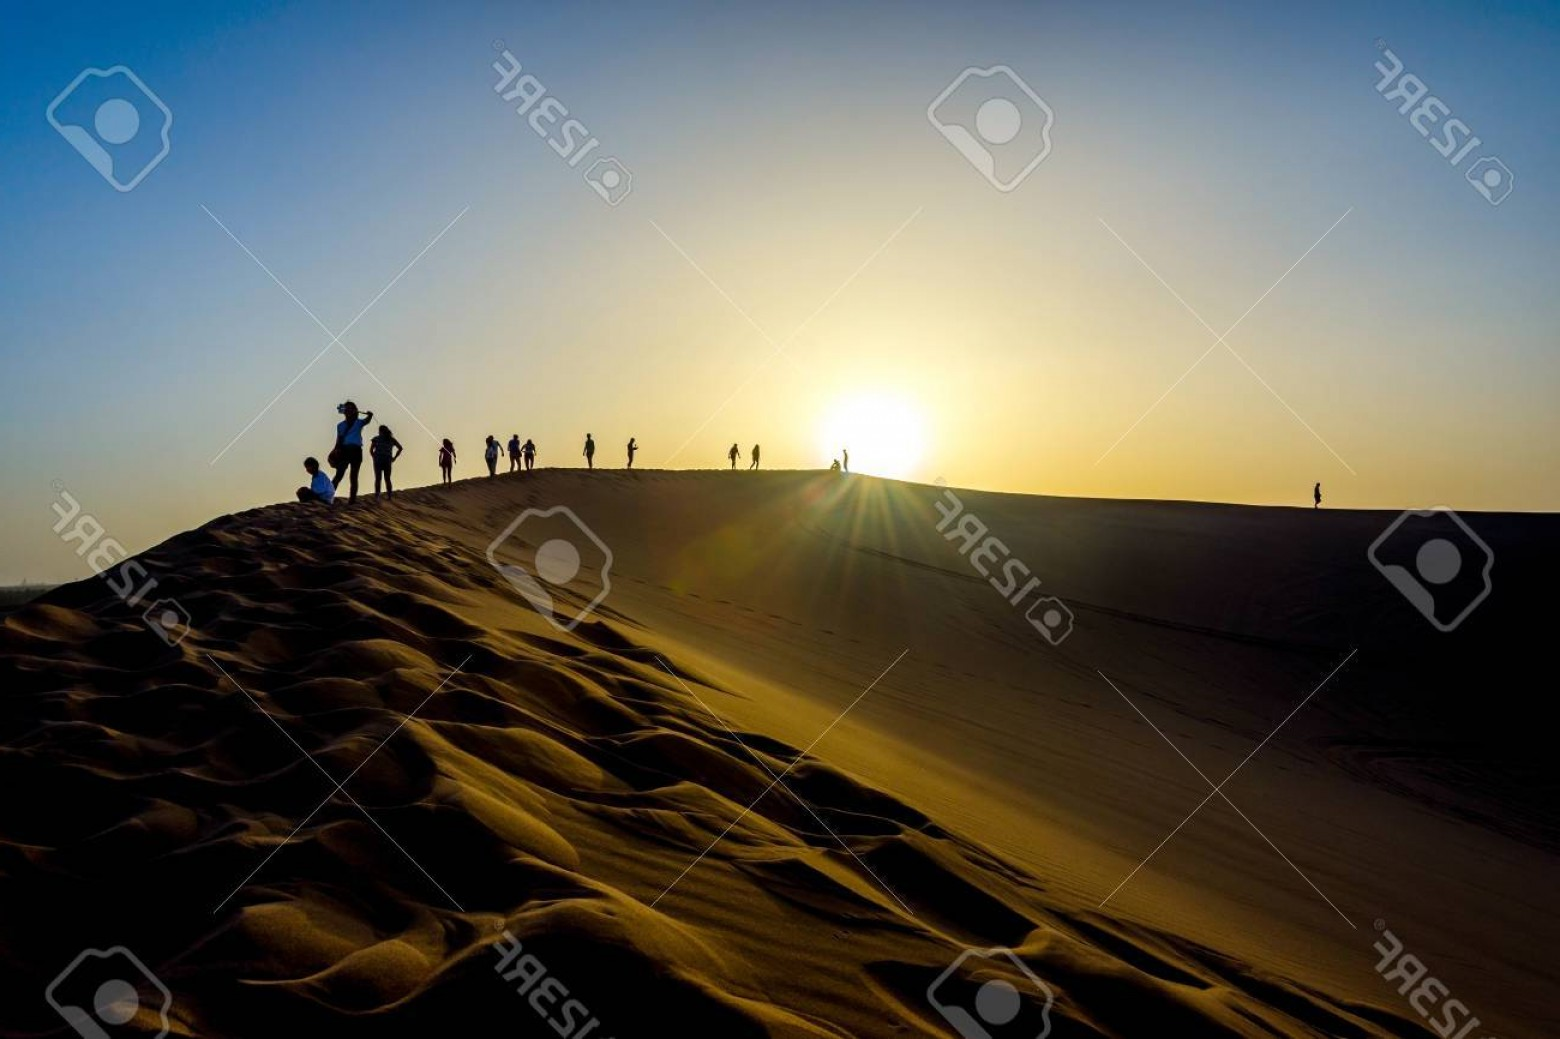 Sand Dune Silhouettes Vectors: Photosilhouette Of People On The Top Of Sand Dunes Gobi Desert China